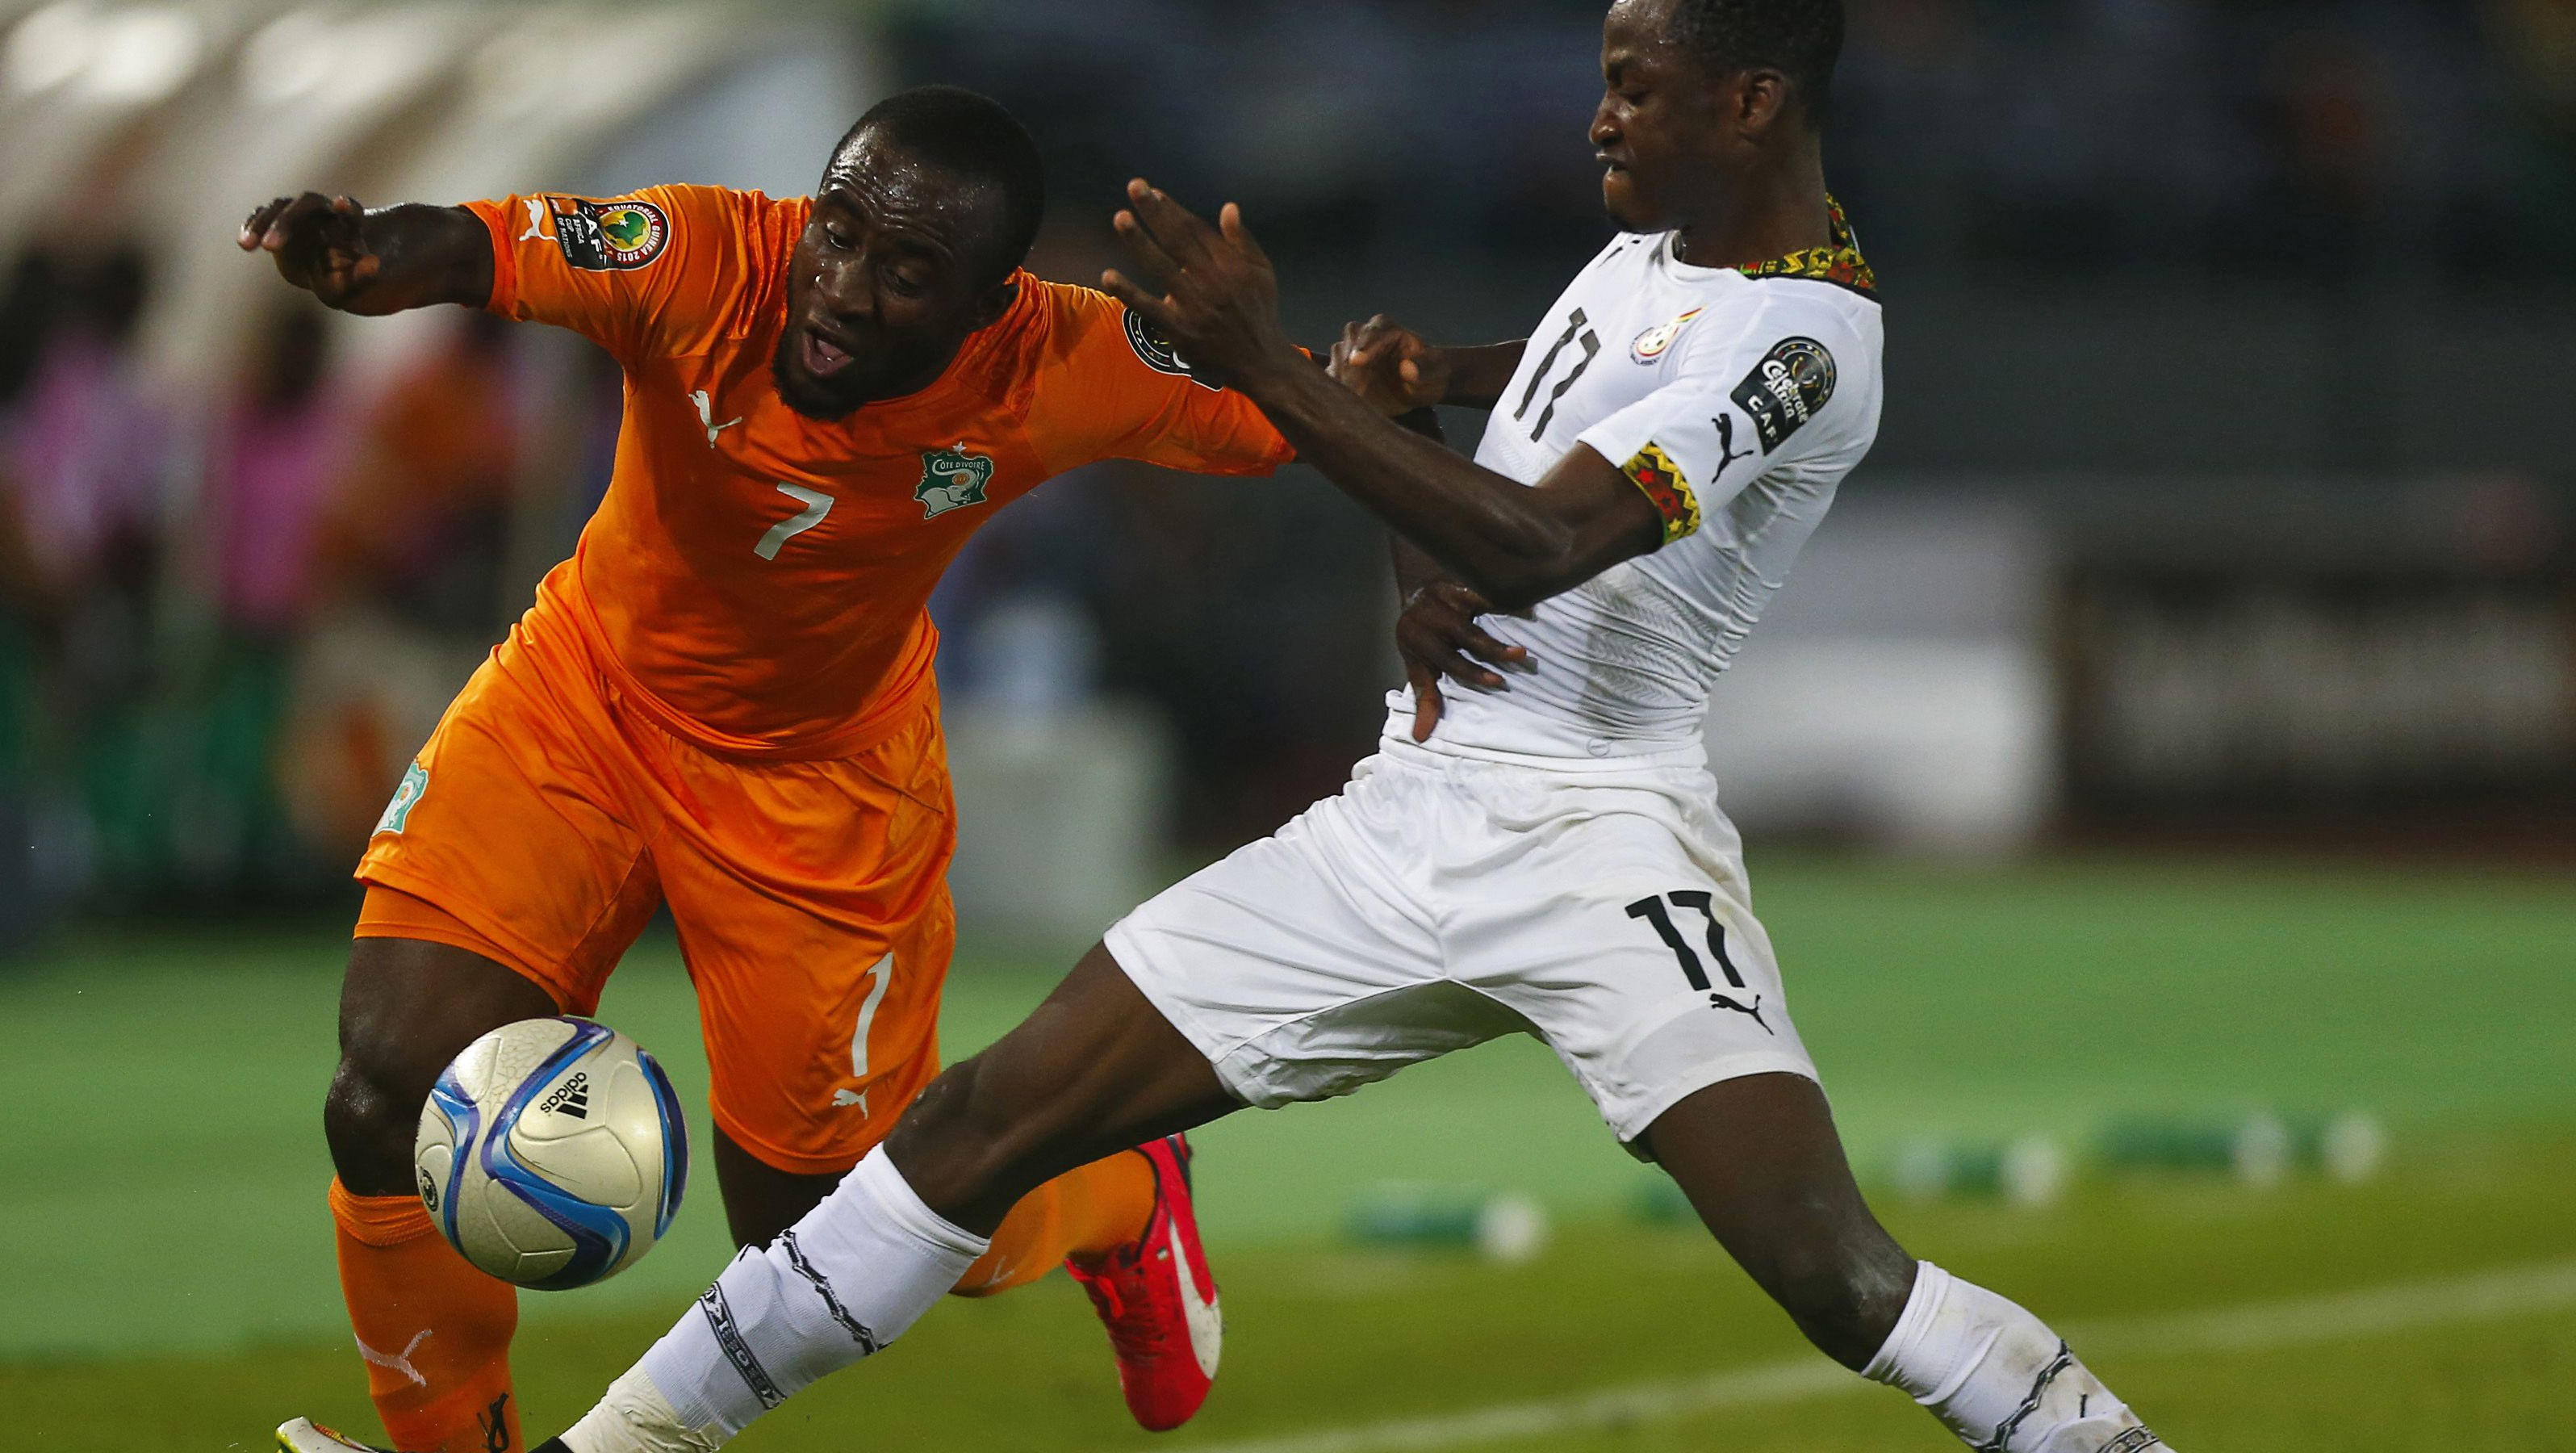 Ivory Coast's Seydou Doumbia (L) challenges Ghana's Baba Rahman during the African Nations Cup final soccer match in Bata, February 8, 2015. REUTERS/Amr Abdallah Dalsh (EQUATORIAL GUINEA - Tags: SPORT SOCCER) - RTR4OPX8